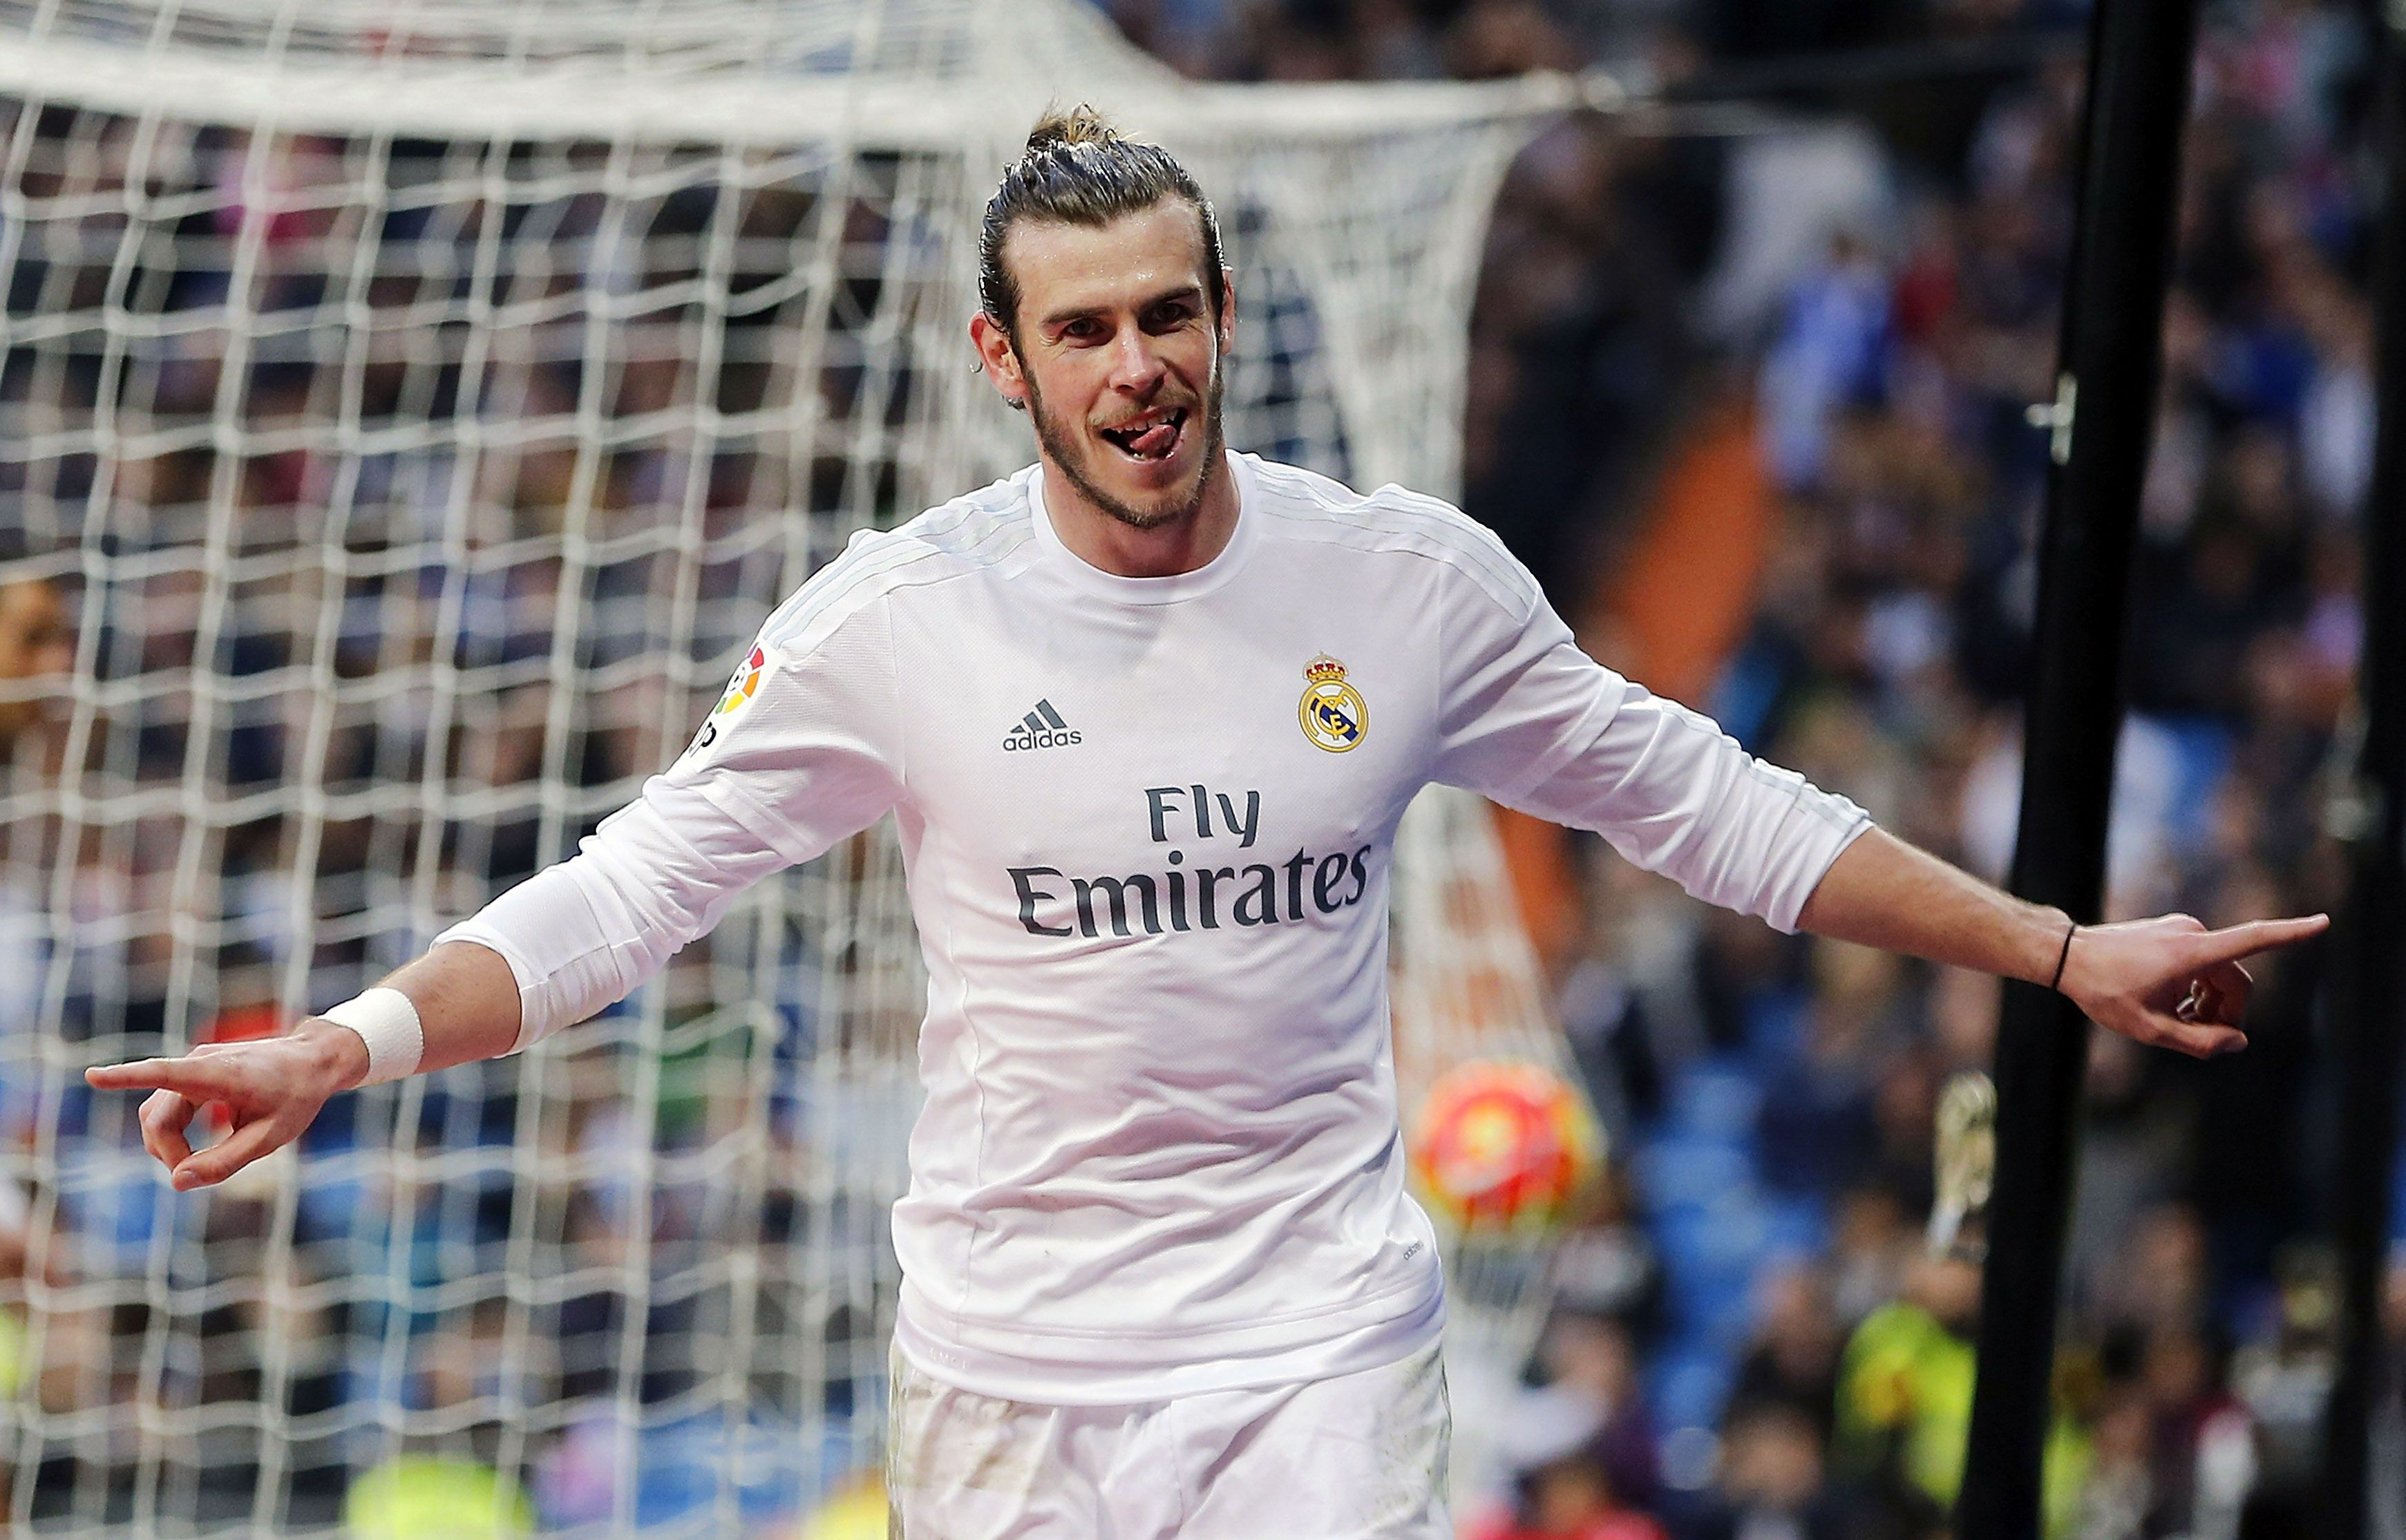 Latest gareth bale hd wallpapers images photos 2018 free download latest gareth bale hd wallpapers images photos 2018 free download voltagebd Images